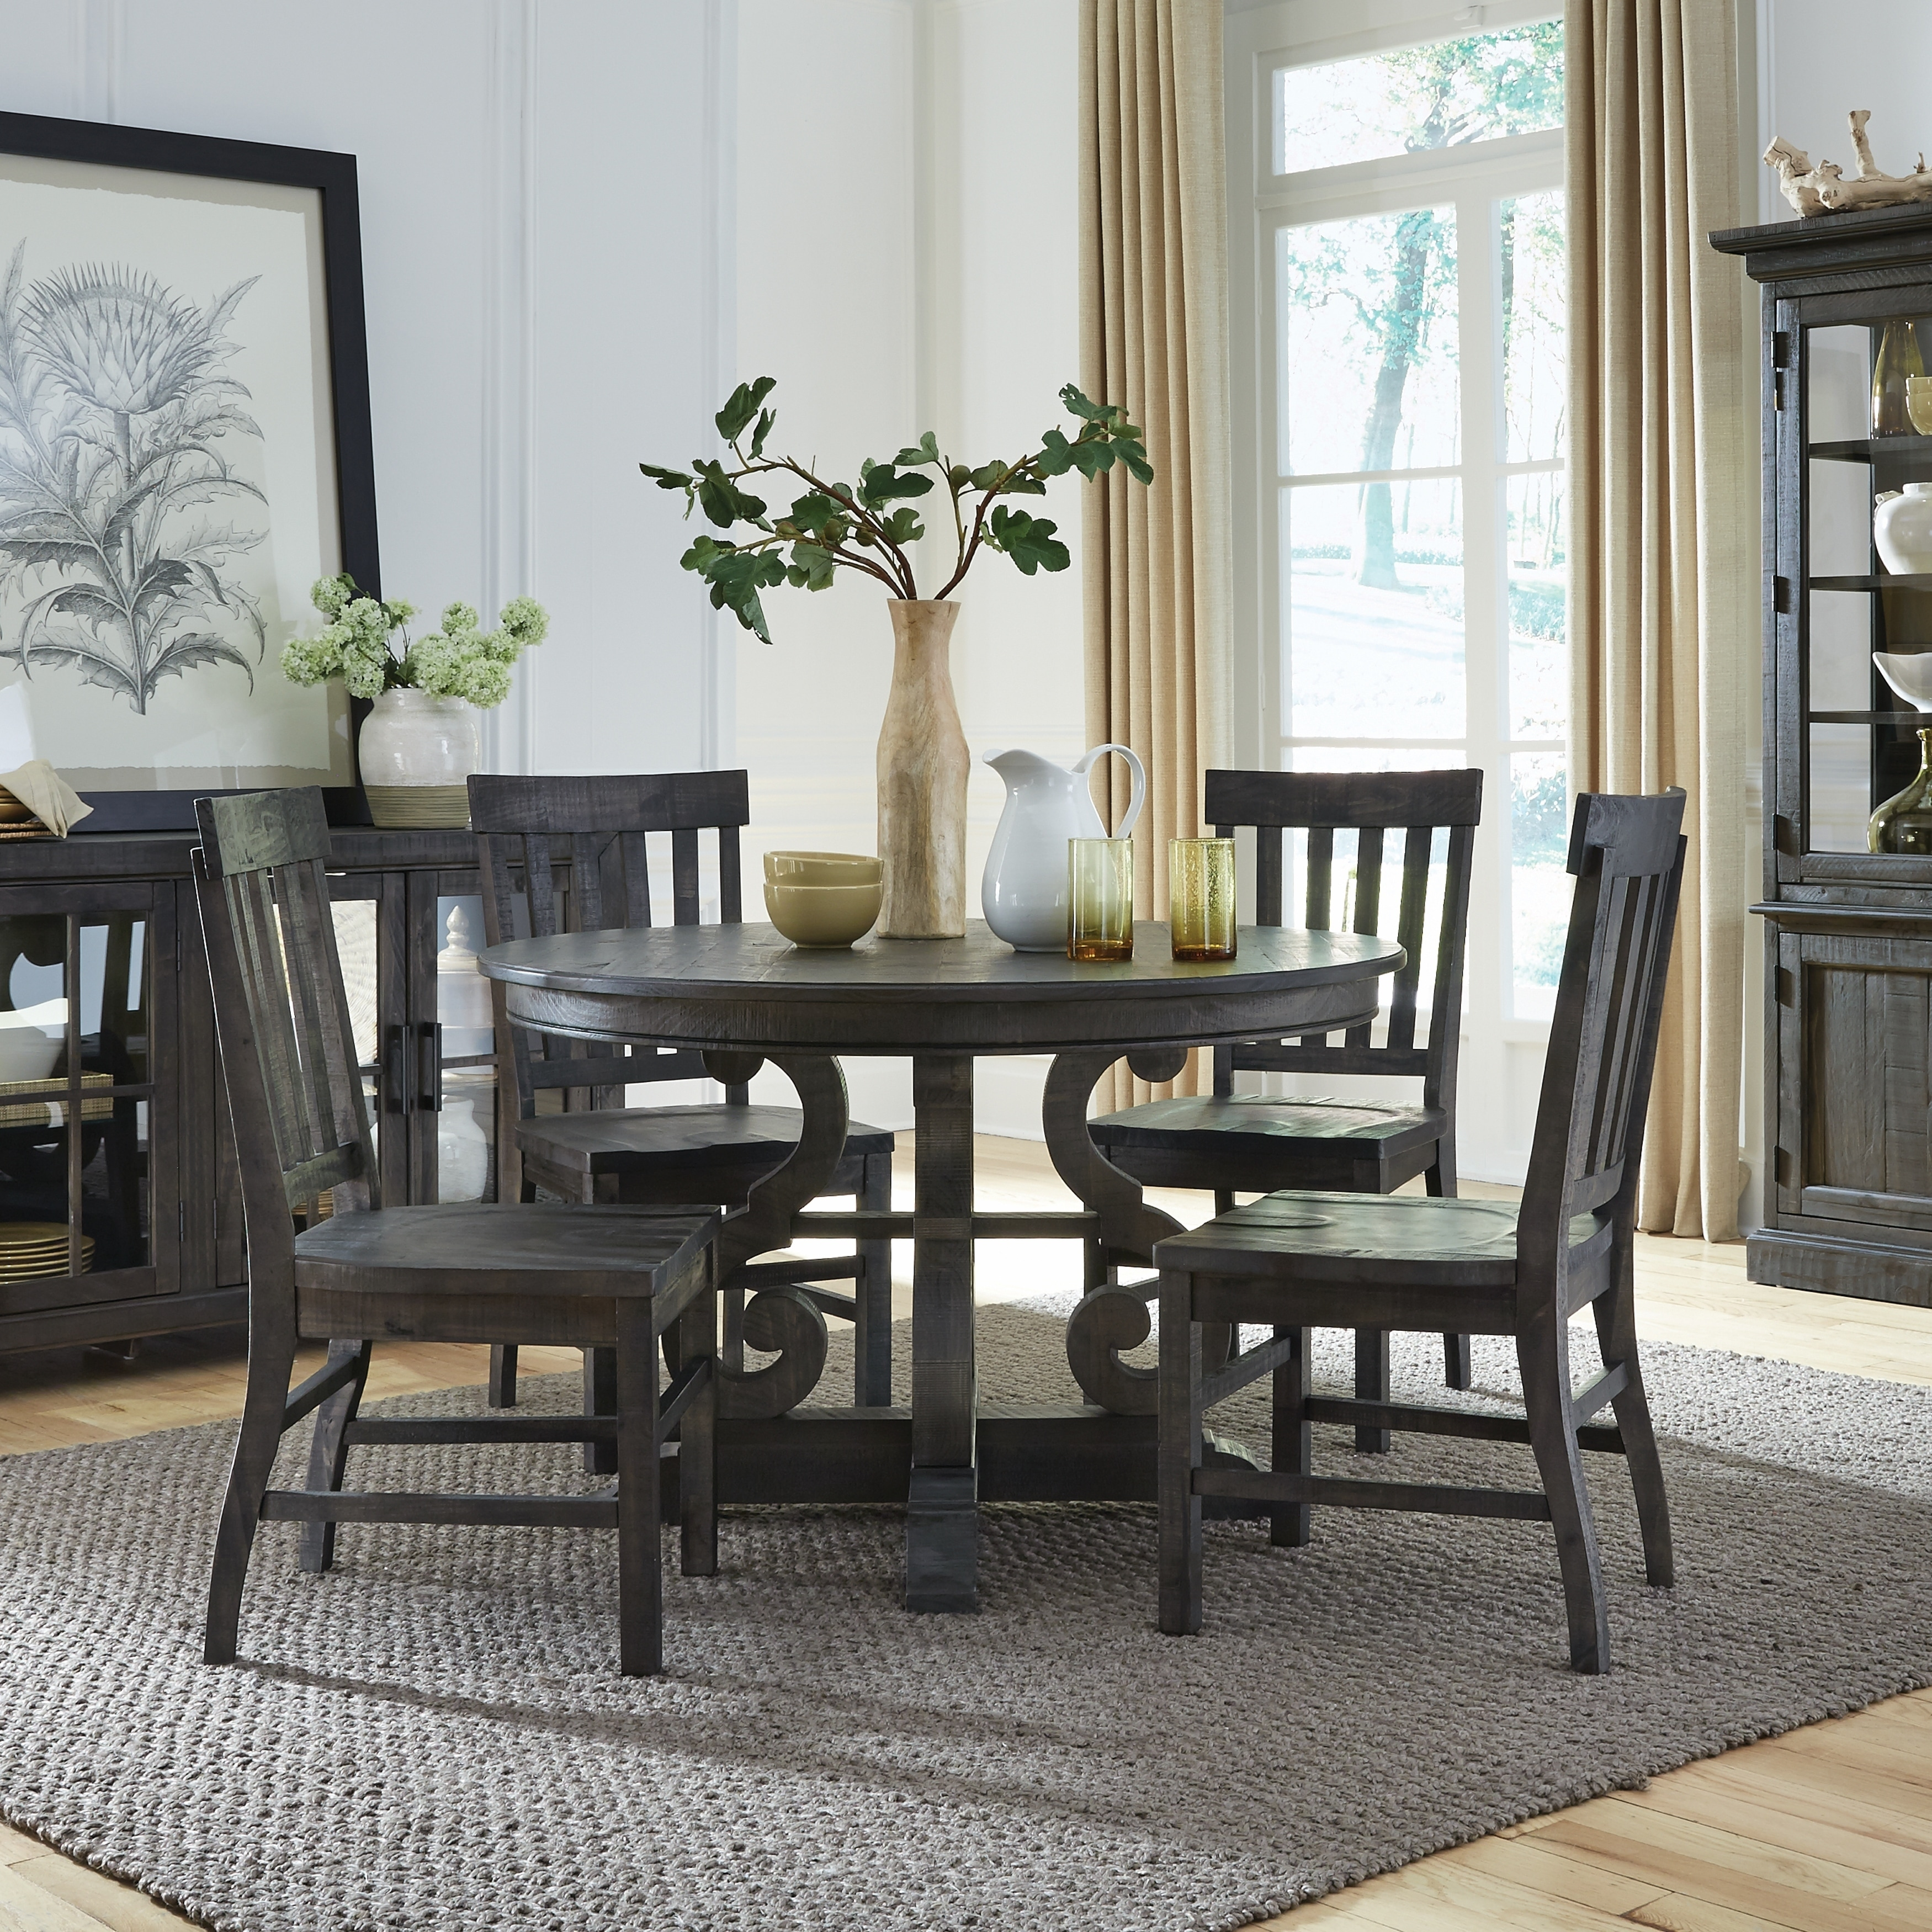 The Gray Barn Kornfeld 48-inch Round Dining Table